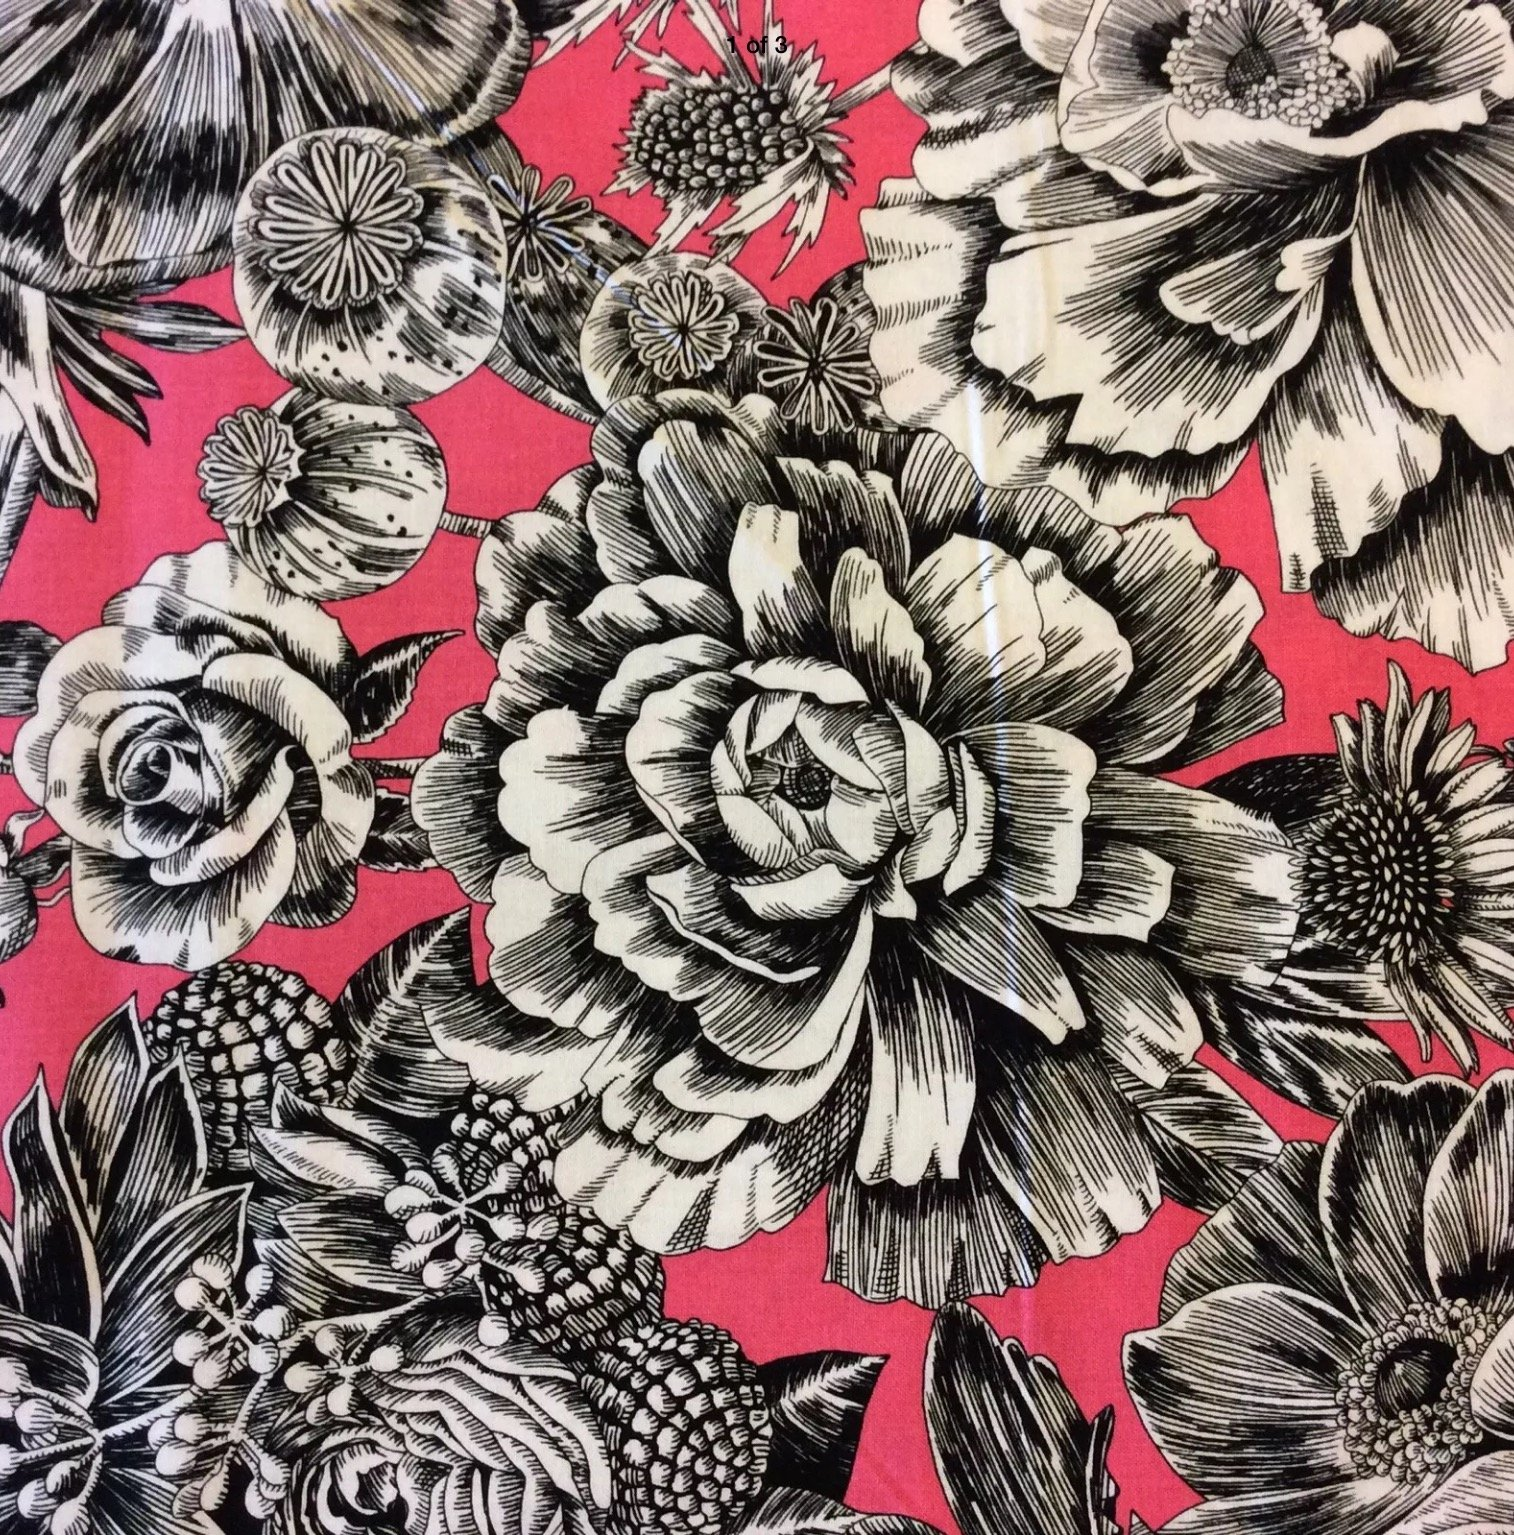 Toile Floral Pink Roses Toile Peonies Flowers  Black White Cotton Quilt Fabric  BL11